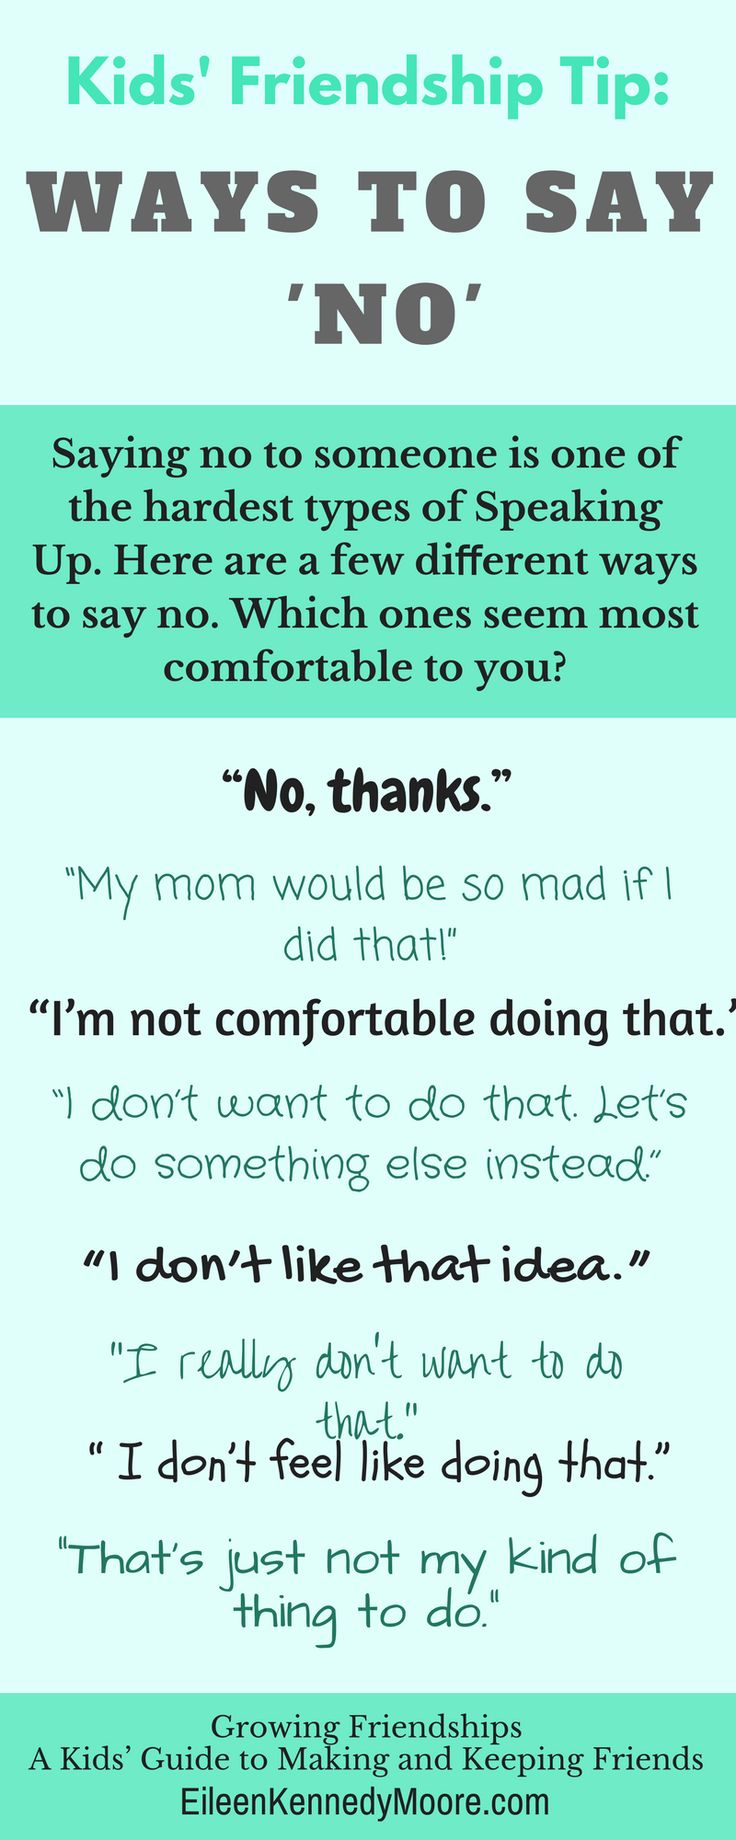 WAYS TO SAY NO for kids | Friendship | Growing Friendships - A Kids' Guide to Making and Keeping Friends | Eileen Kennedy-Moore PhD | Christine McLaughlin | Parenting